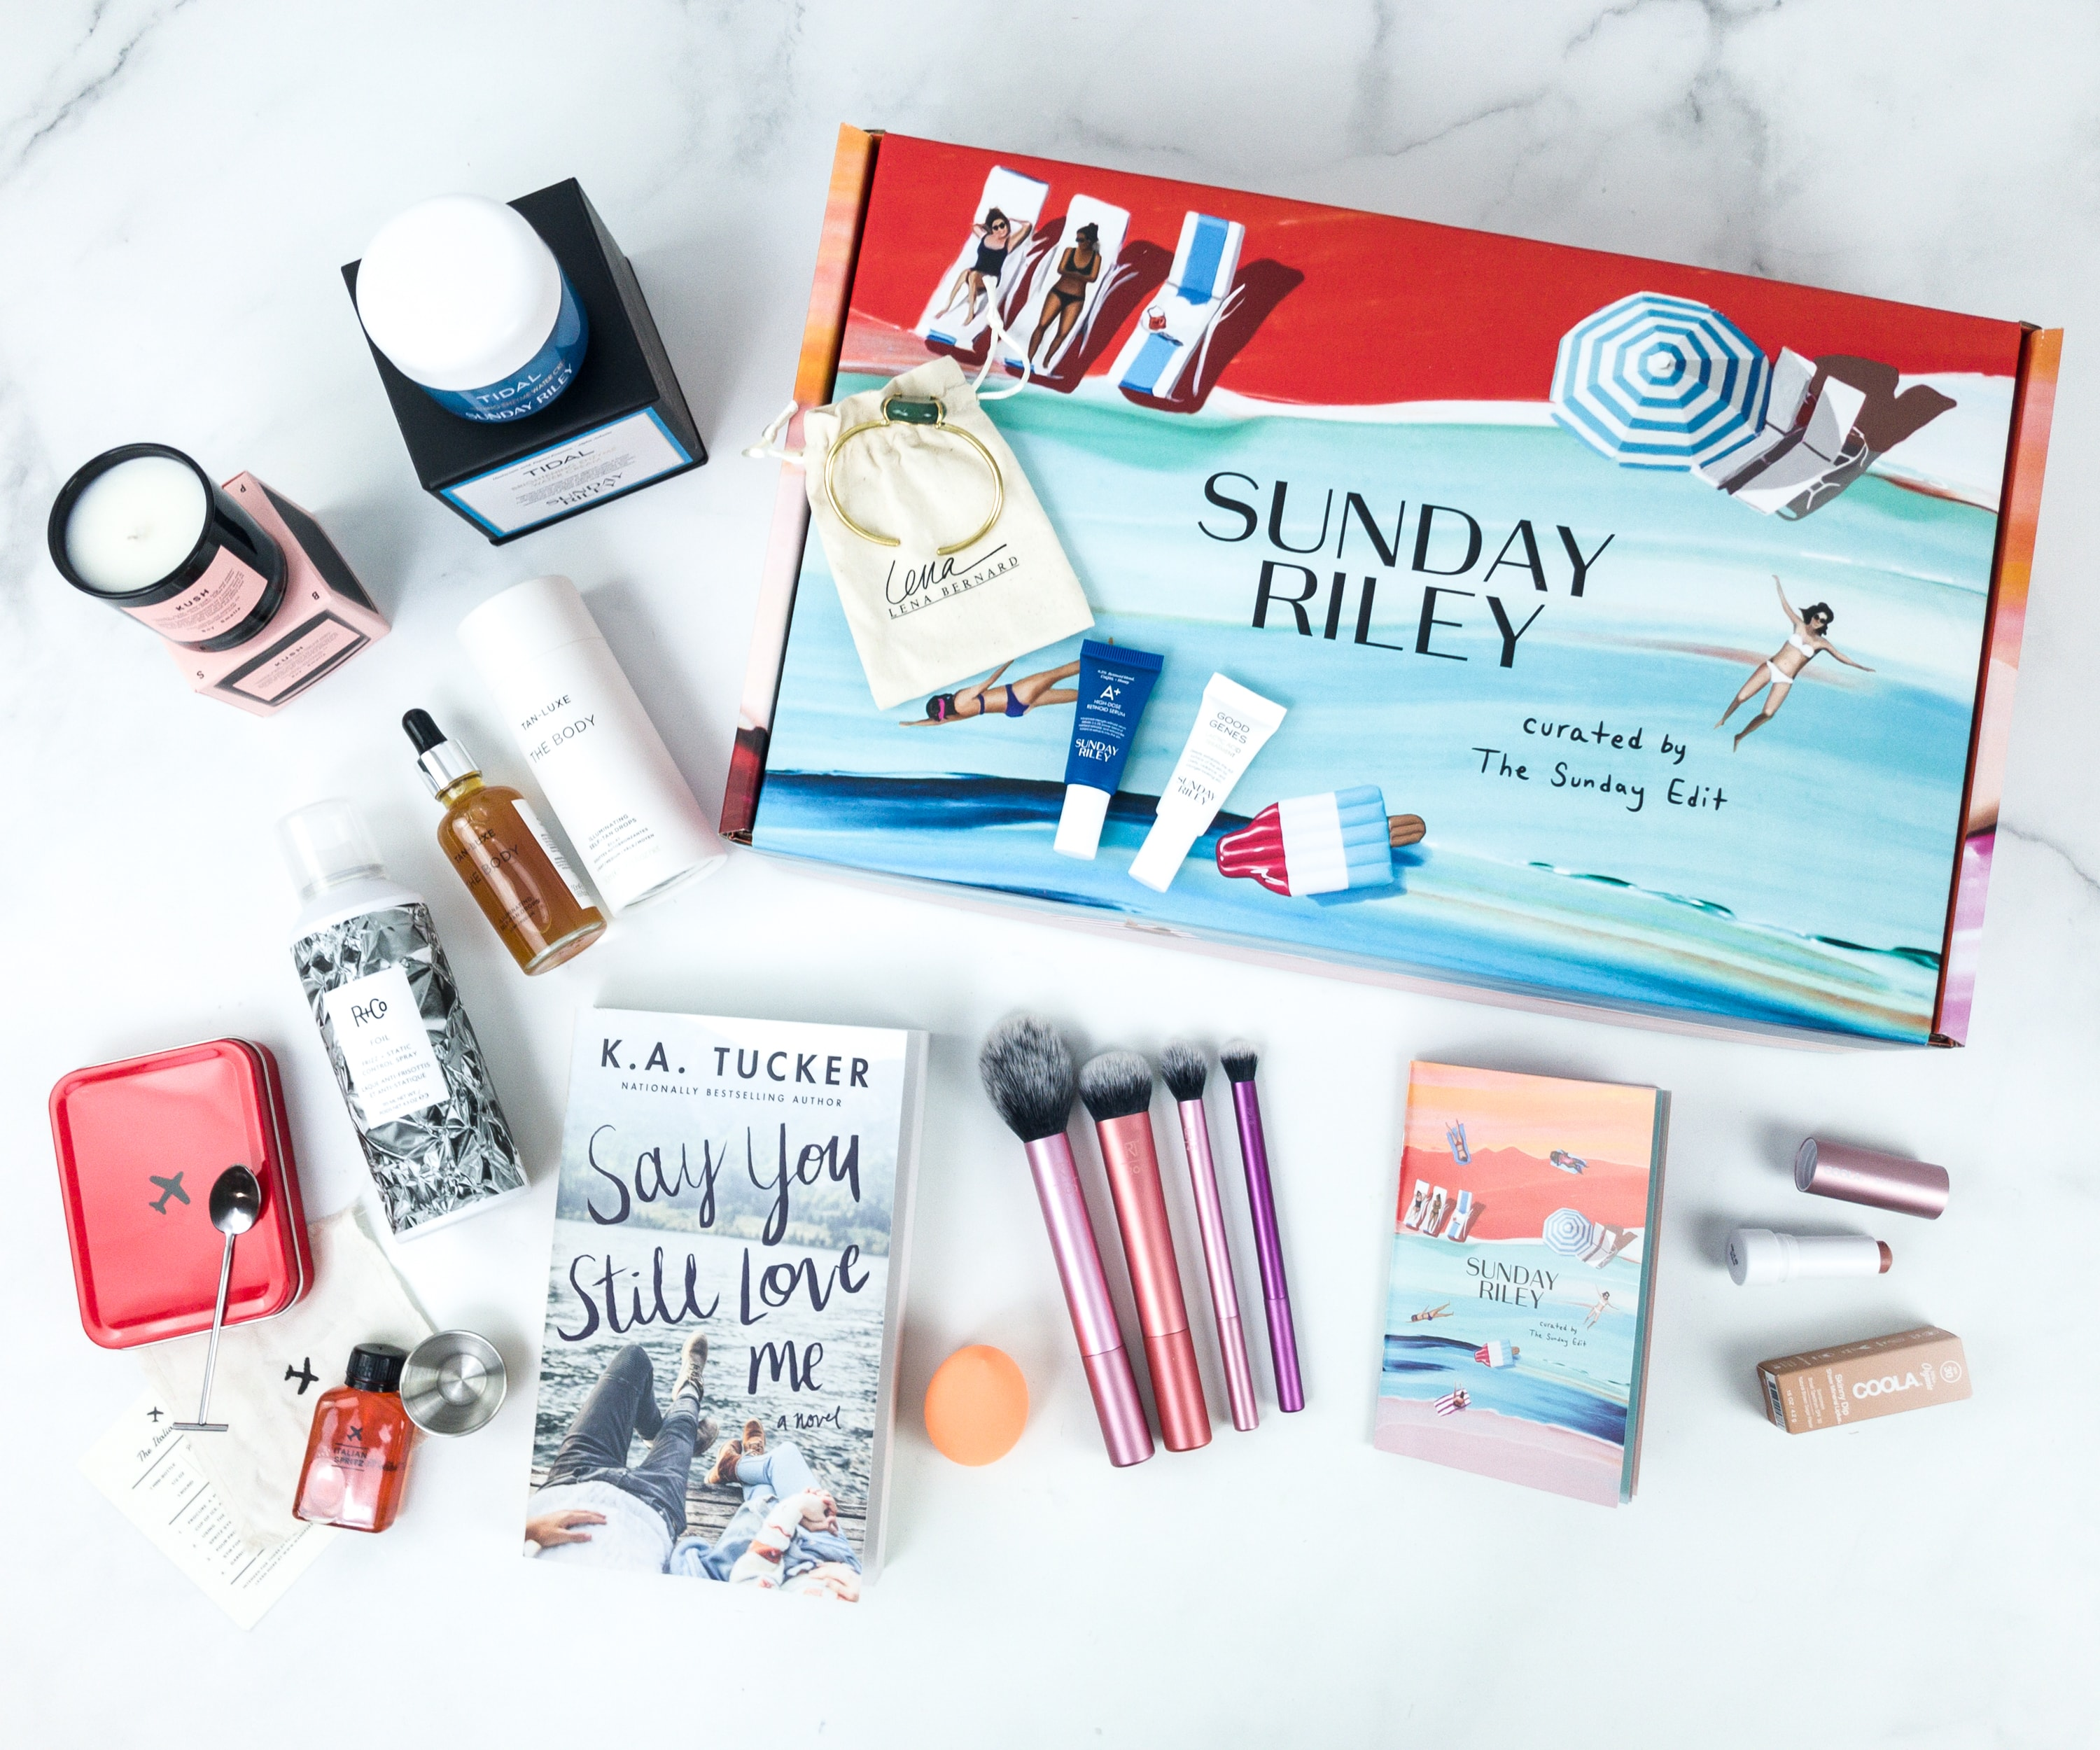 Sunday Riley Box Summer 2019 Review + Coupon